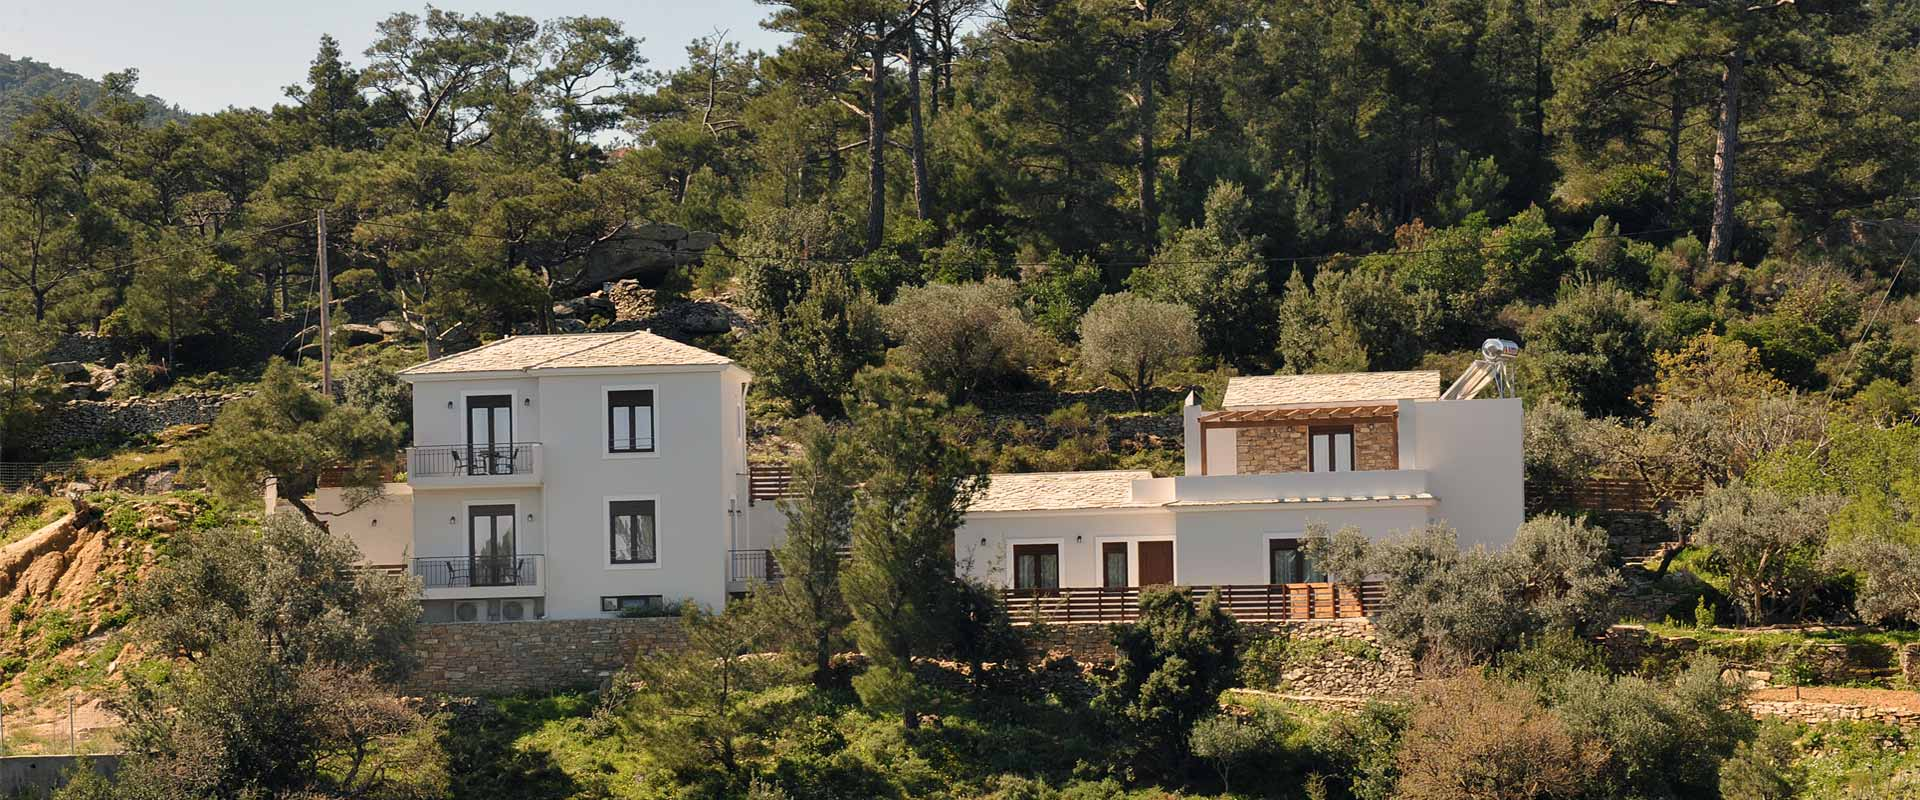 ikaria olivia villas view the building